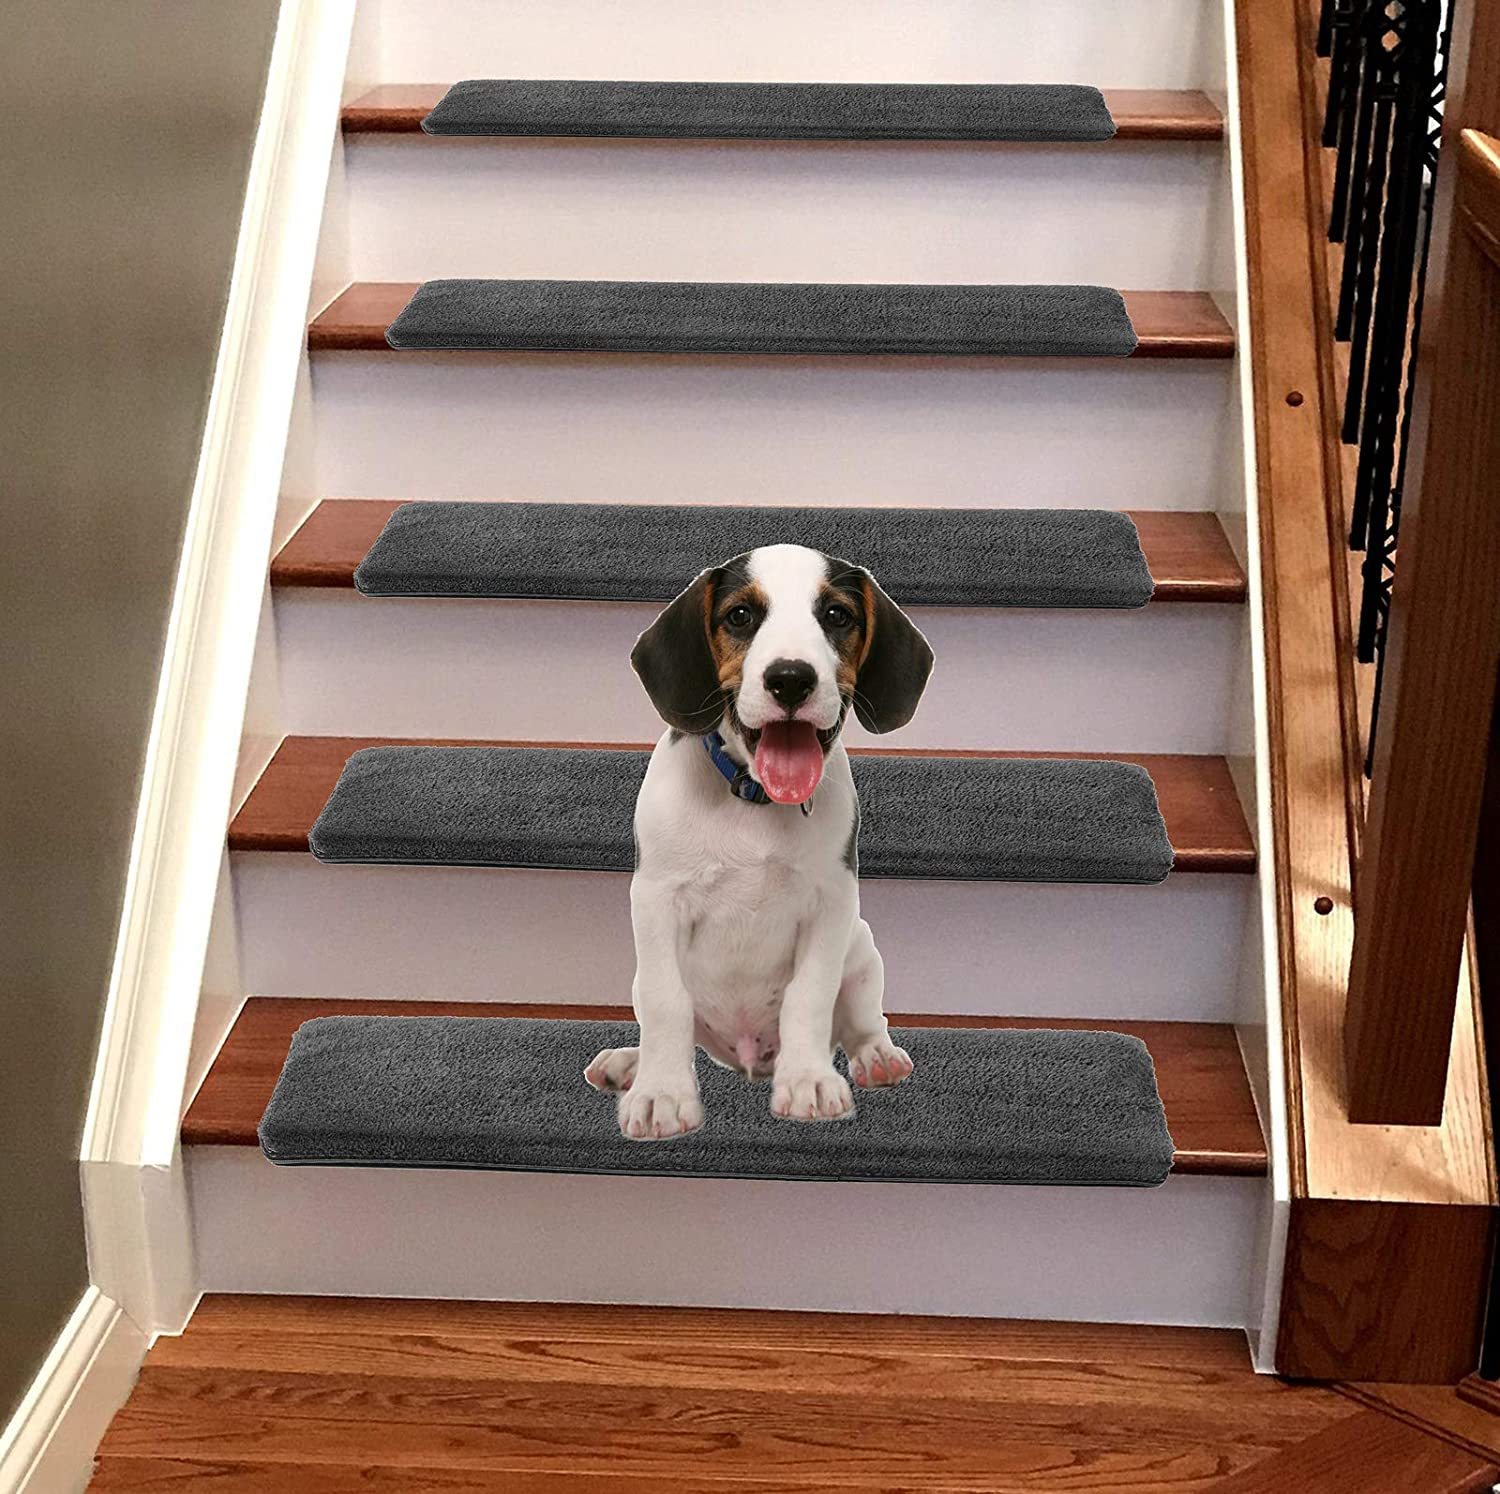 Jorviz Bullnose Carpet Stair Treads Set of 14 Soft Non Slip Self Adhesive Indoor Stair Protectors Pet Friendly Rugs Covers Mats Skid Resistant Washable Rubber Backing Dark Grey (9.5